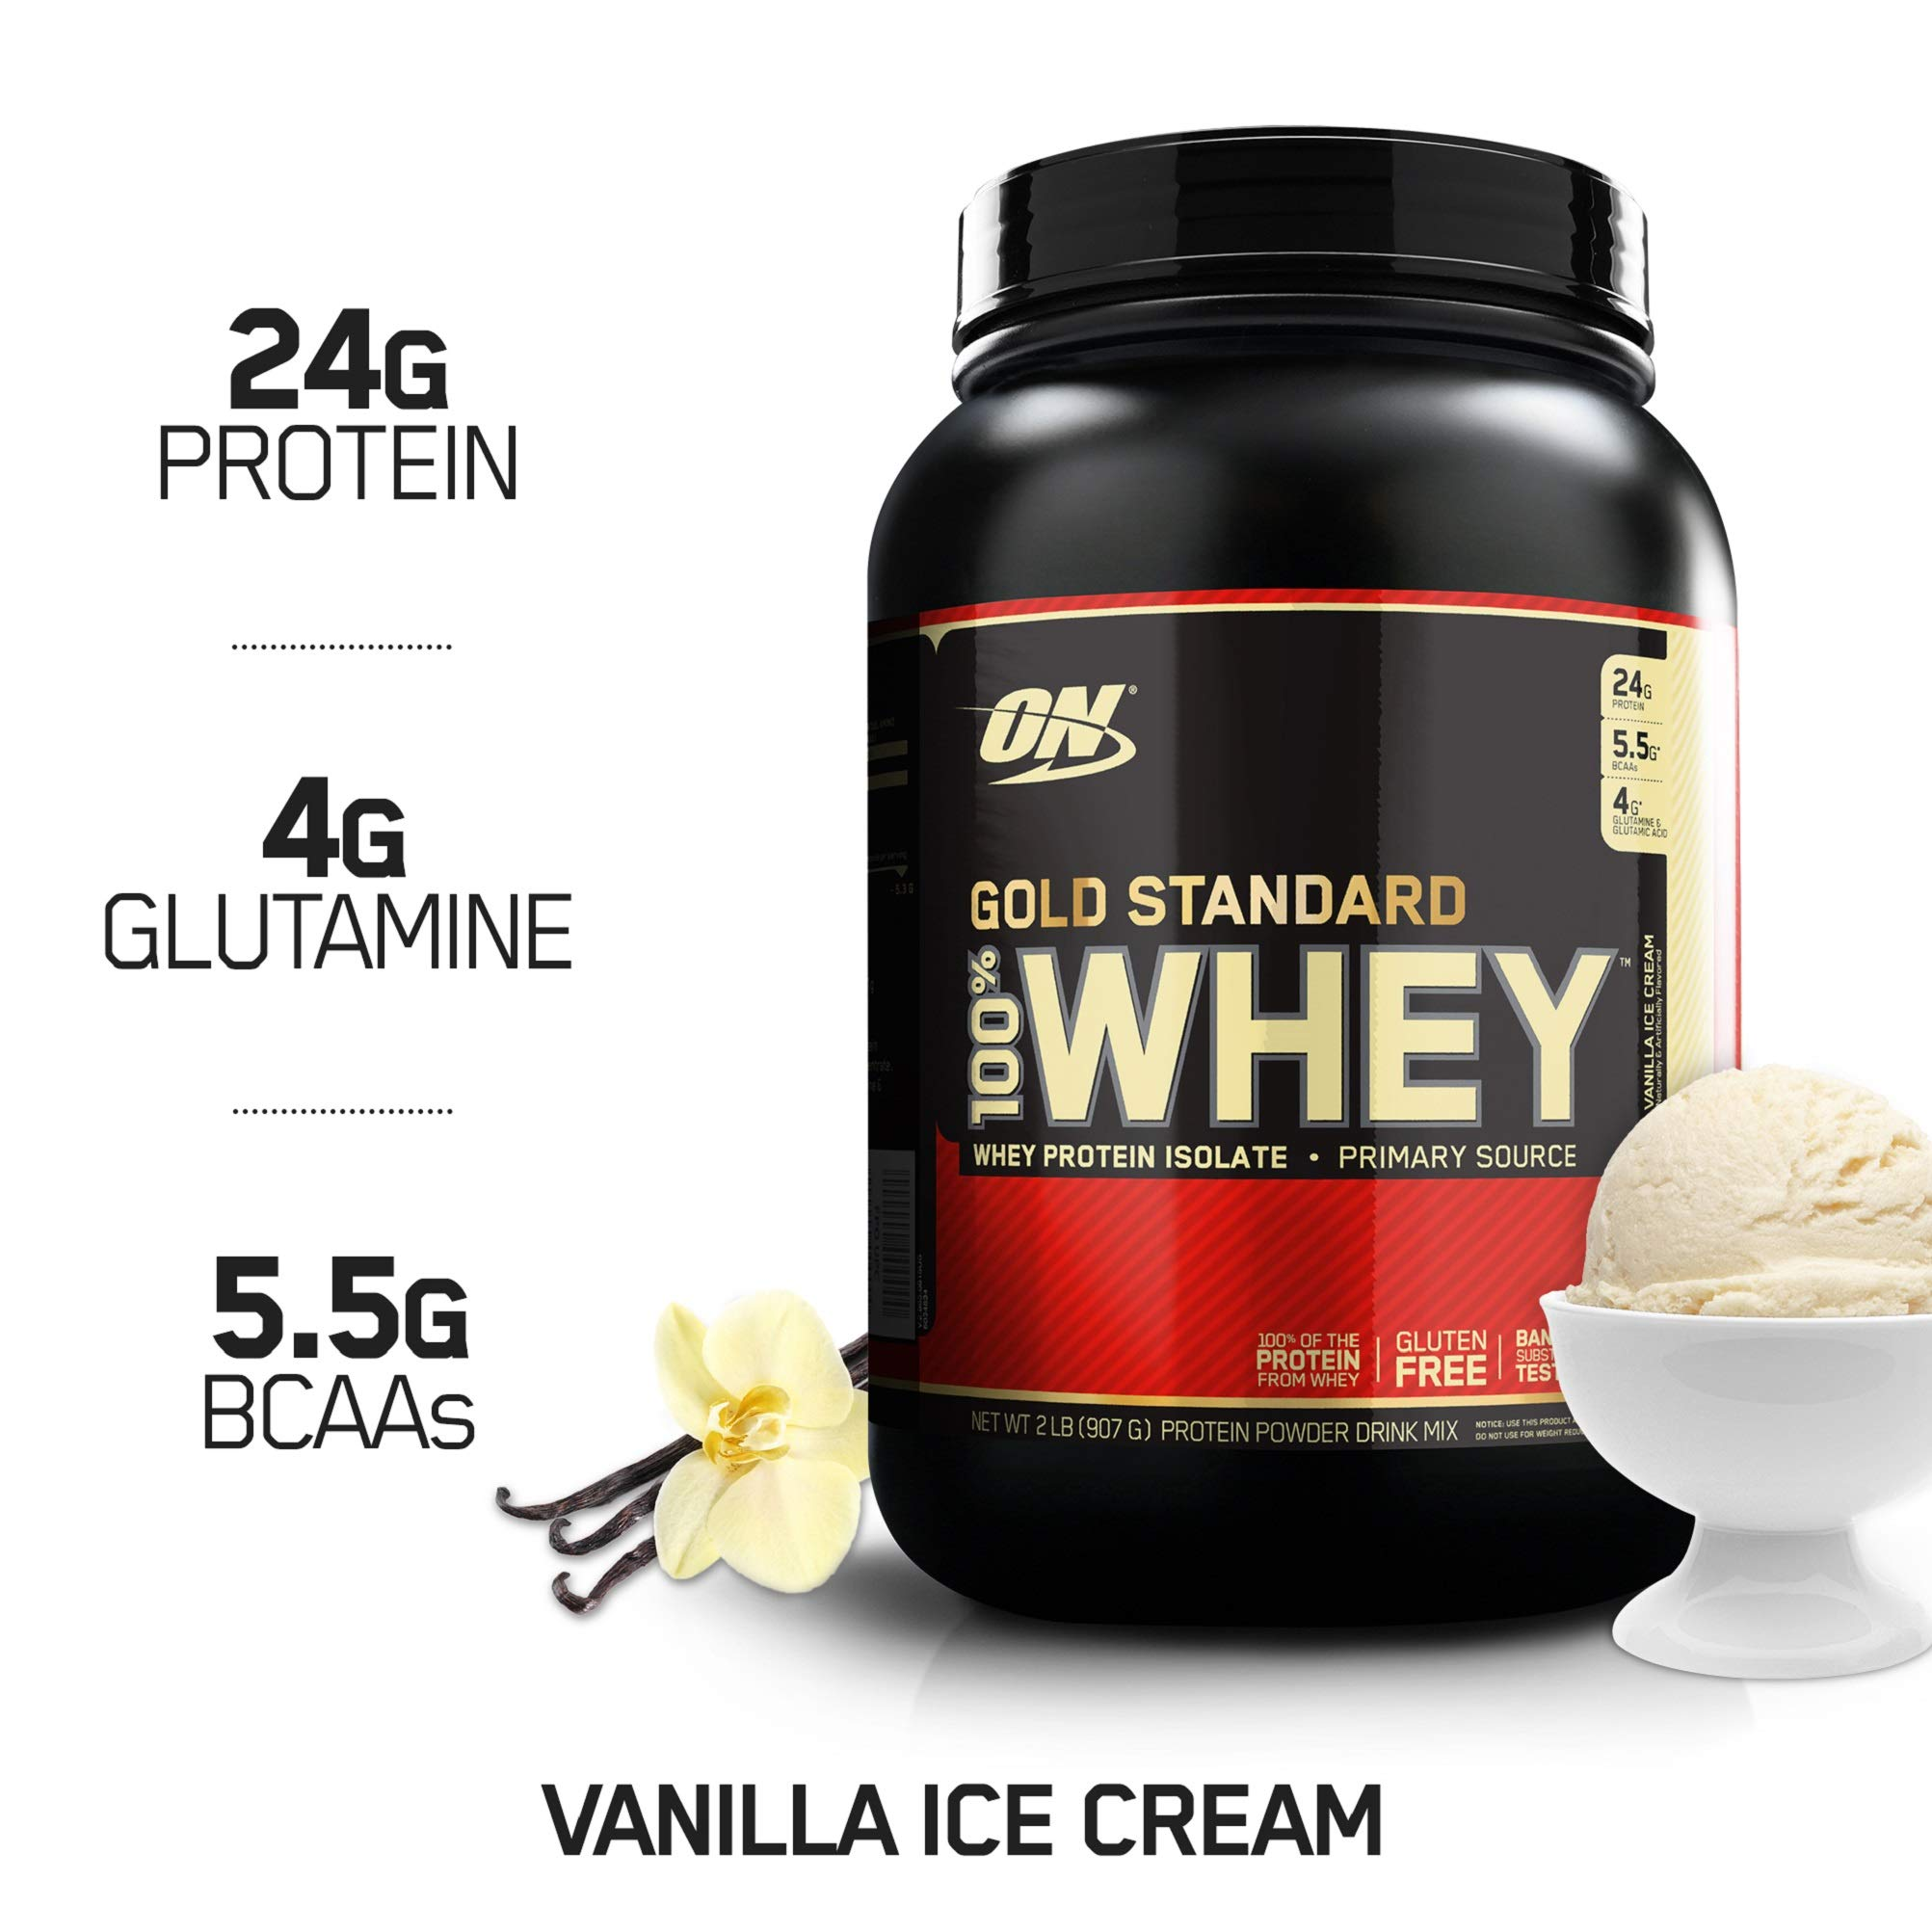 OPTIMUM NUTRITION GOLD STANDARD 100% Whey Protein Powder From Whey Isolates, Vanilla Ice Cream - 2 Pound by Optimum Nutrition